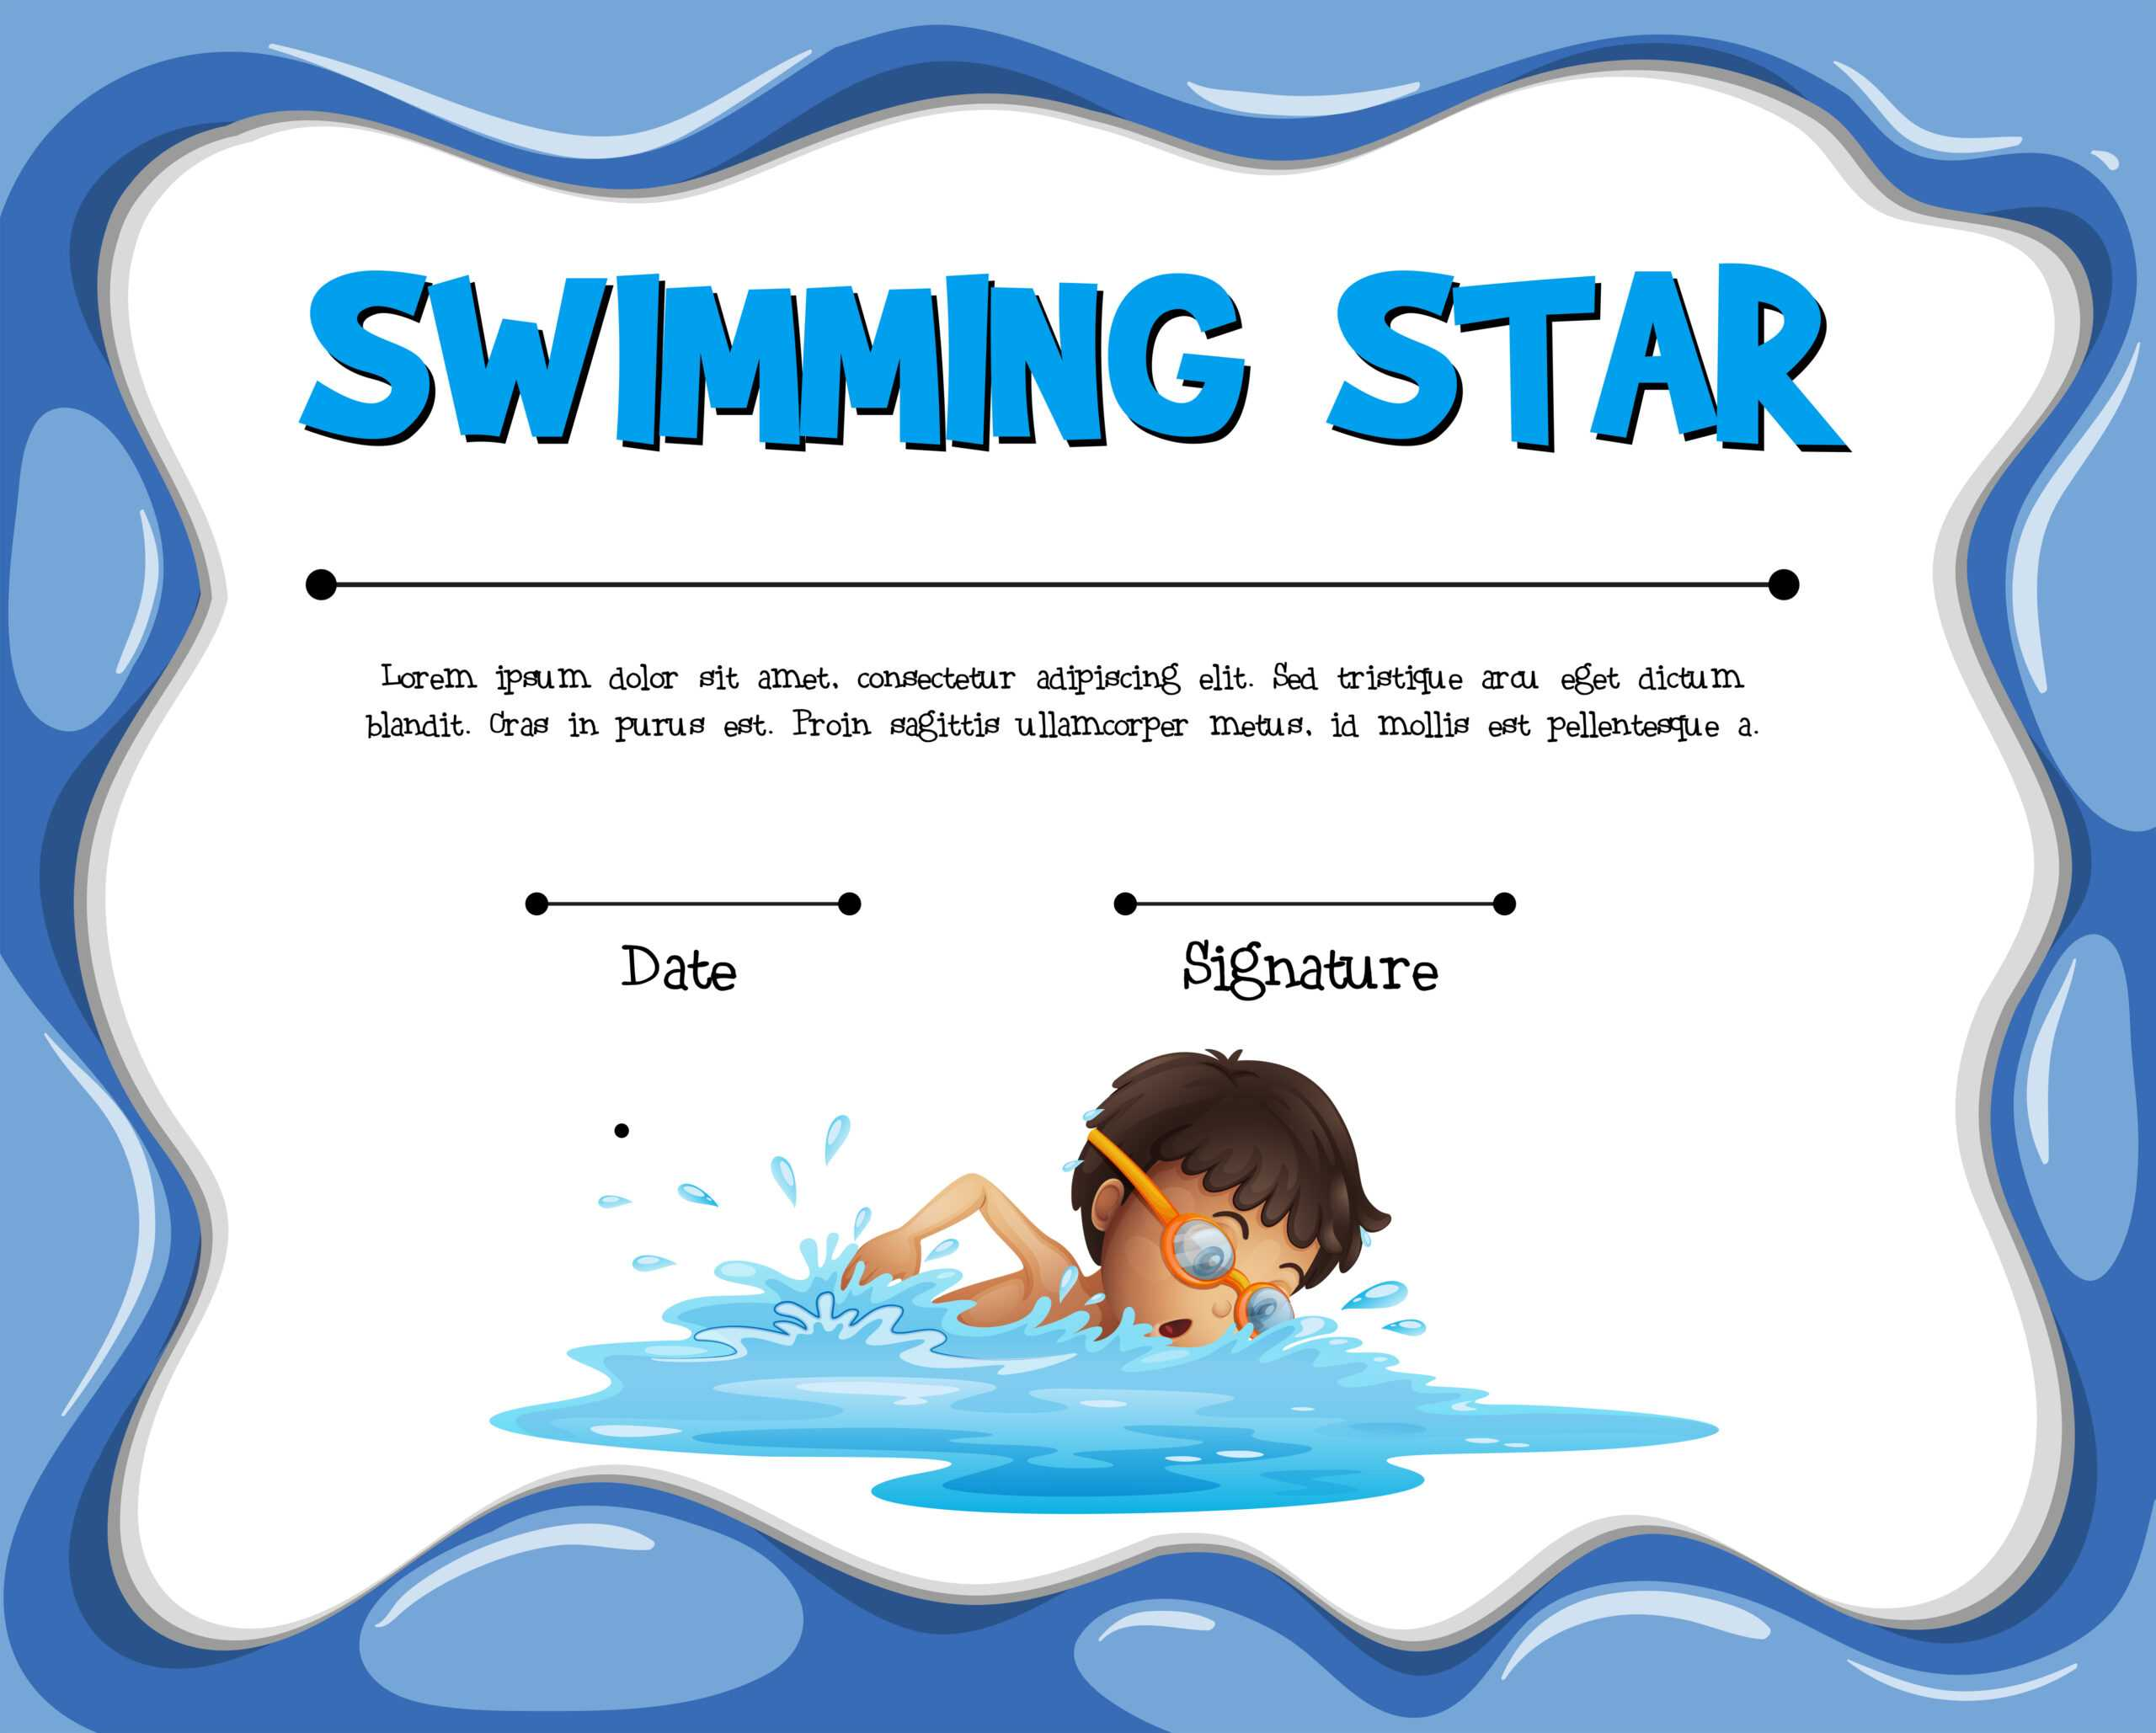 Swimming Star Certification Template With Swimmer - Download Inside Free Swimming Certificate Templates